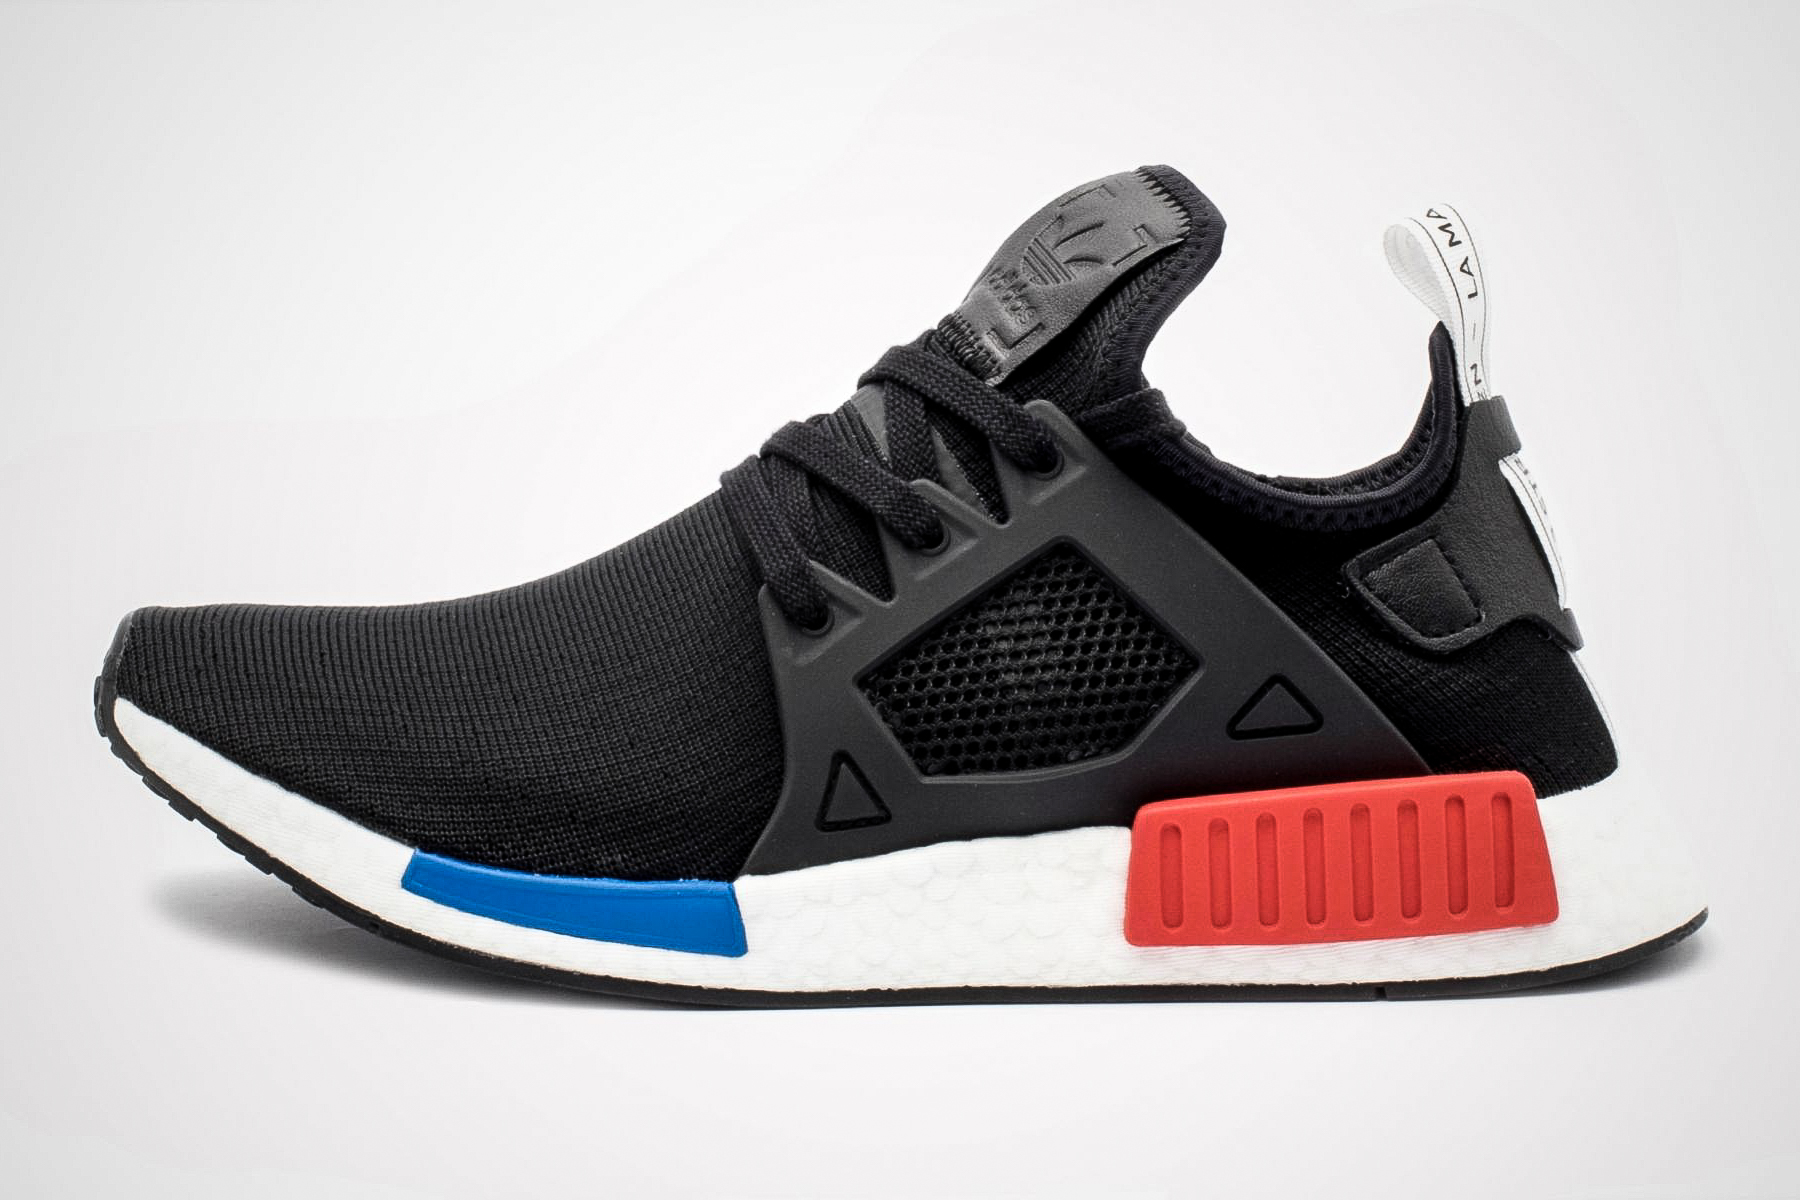 adidas nmd xr1 pk og. Black Bedroom Furniture Sets. Home Design Ideas